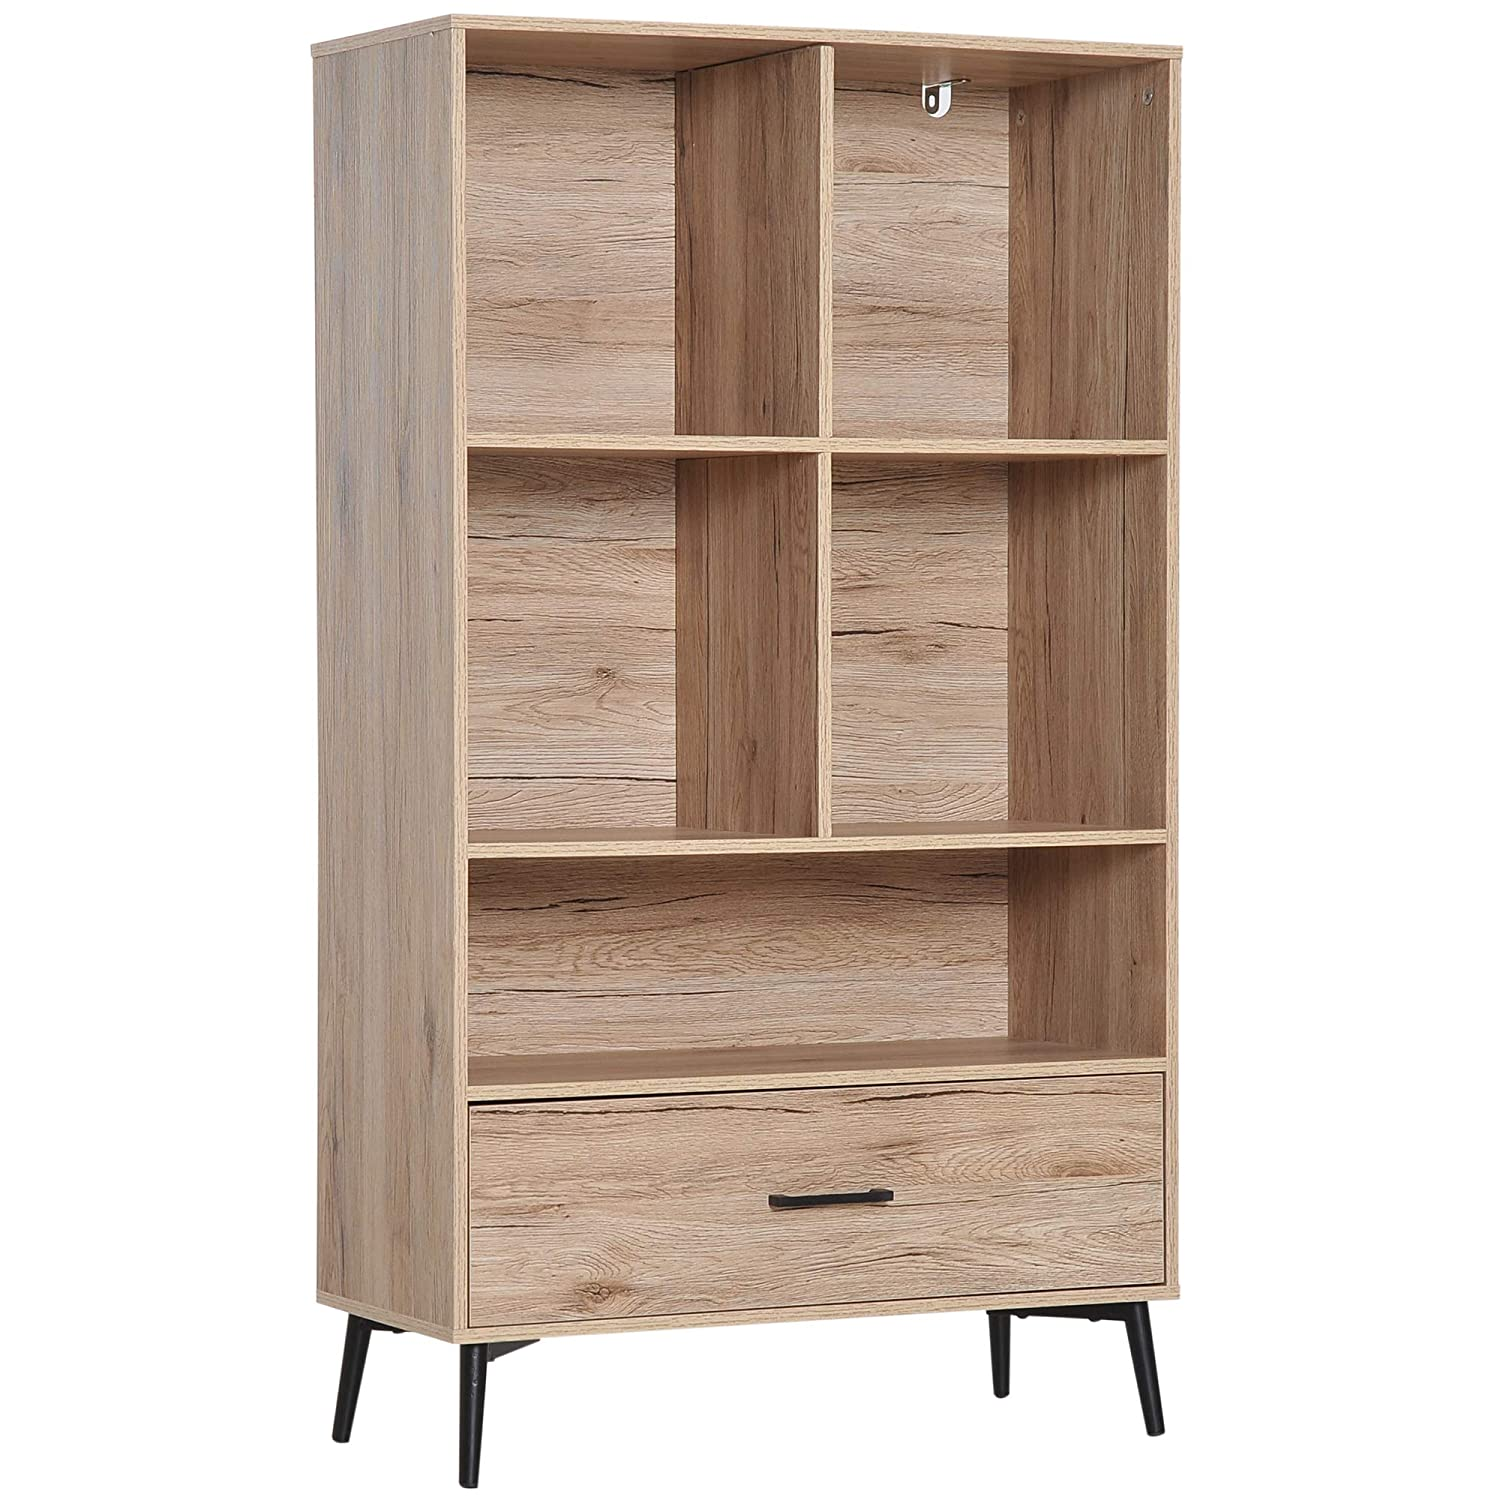 Mid-Century Modern Bookcase Freestanding Home Storage Cabinet Display Rack Home Office Furniture Oak Wood Aosom Canada